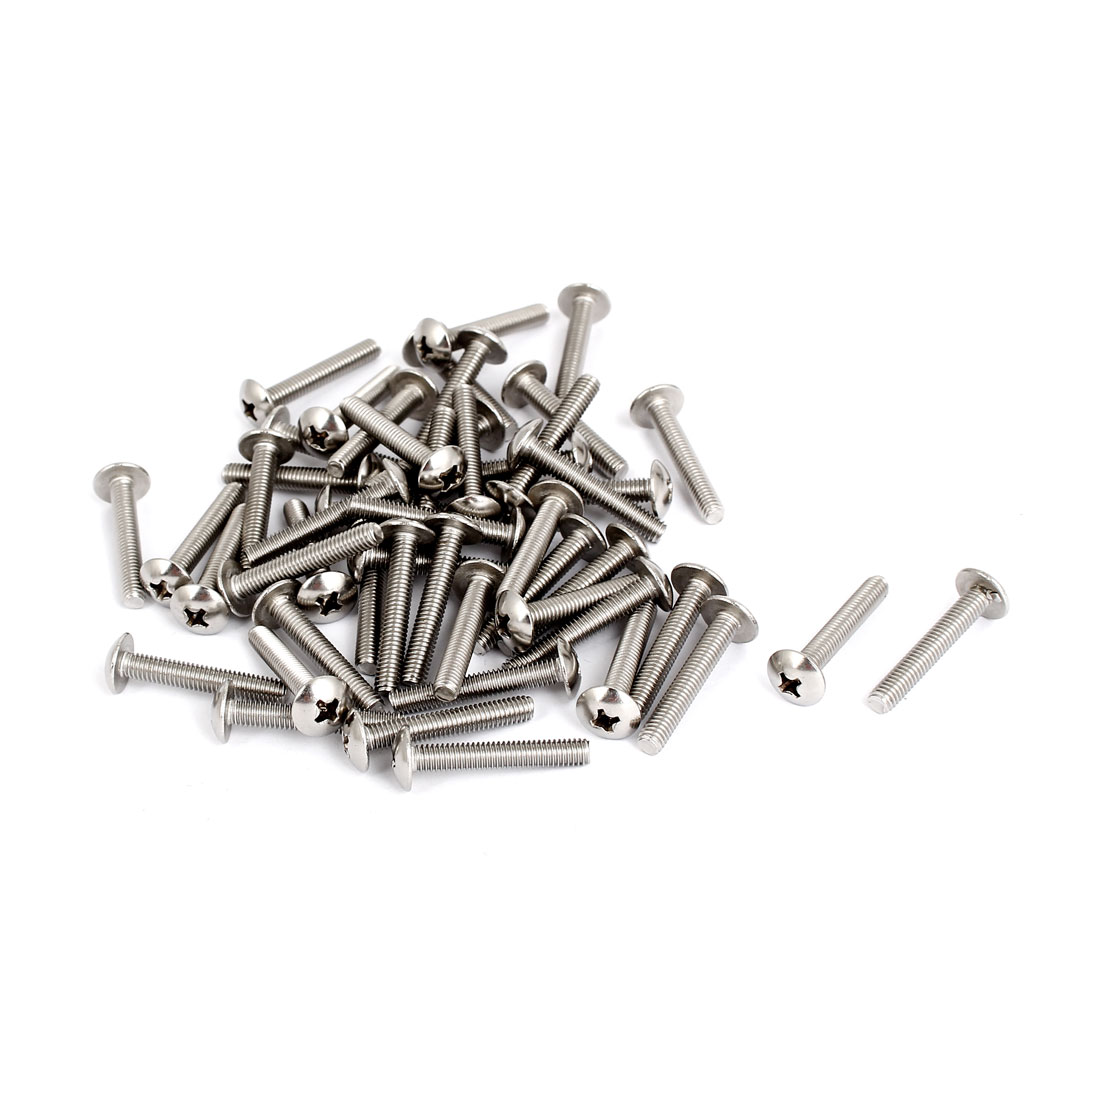 M4x25mm Stainless Steel Truss Phillips Head Machine Screws 50pcs